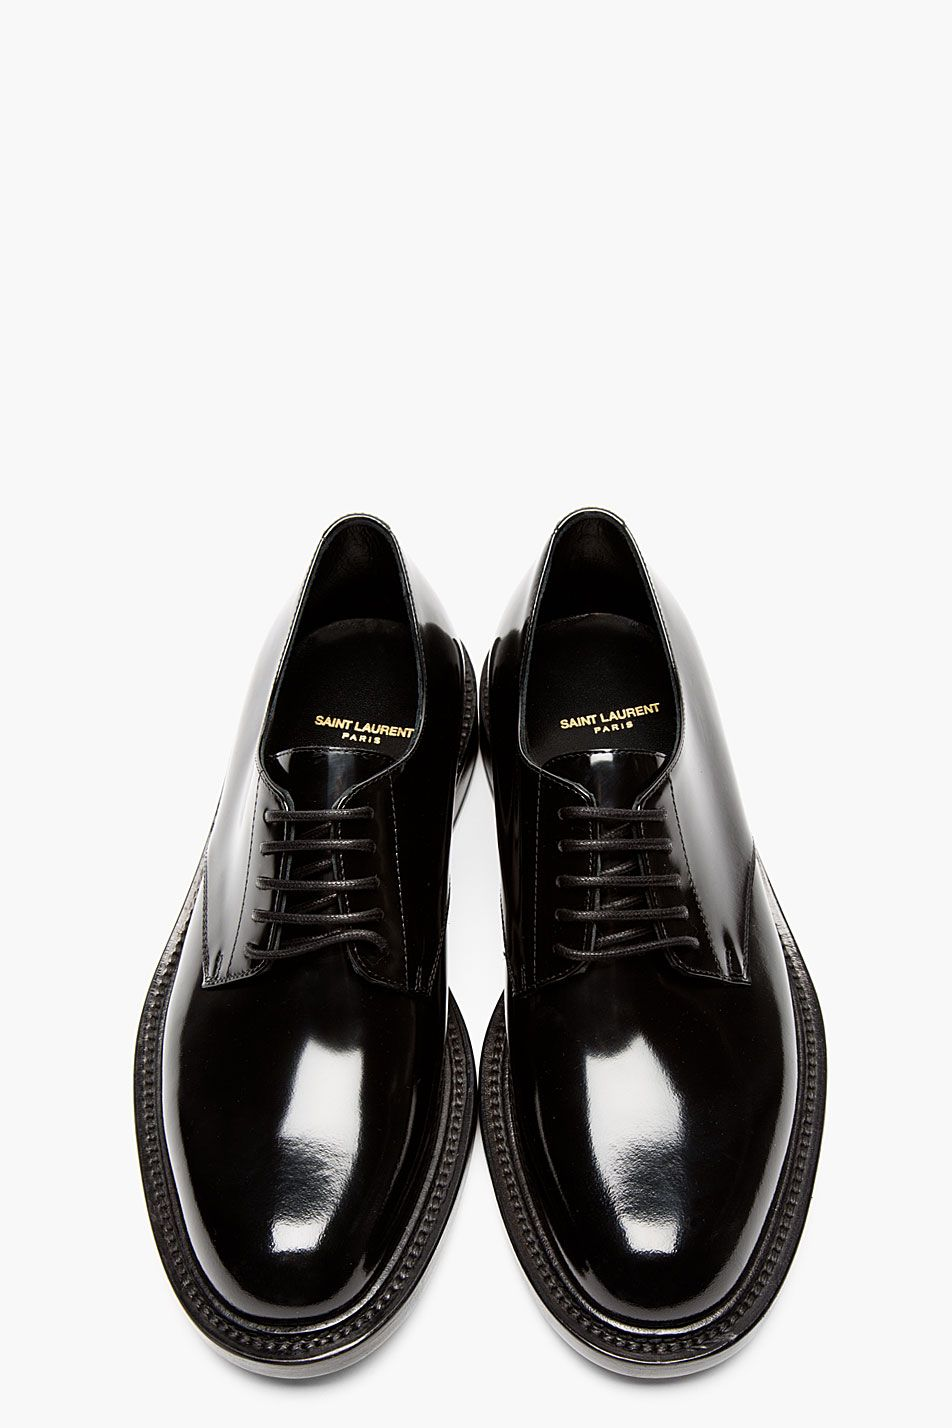 159182148c8 Laurent/Black Shoes. | Things to Wear | Shoes, Derby shoes, Dress shoes